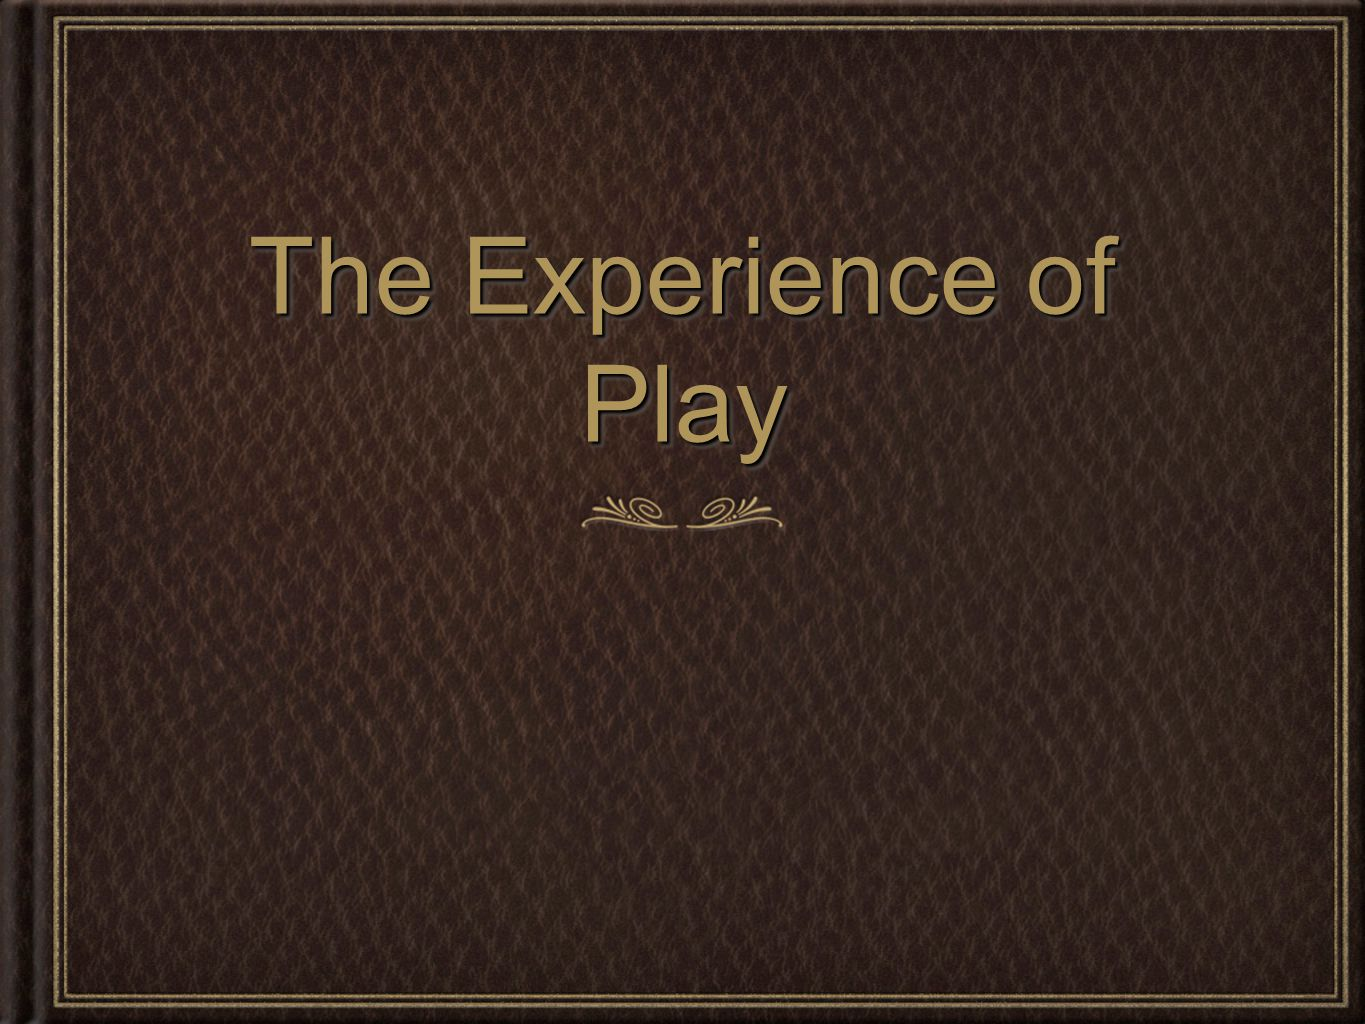 The Experience of Play